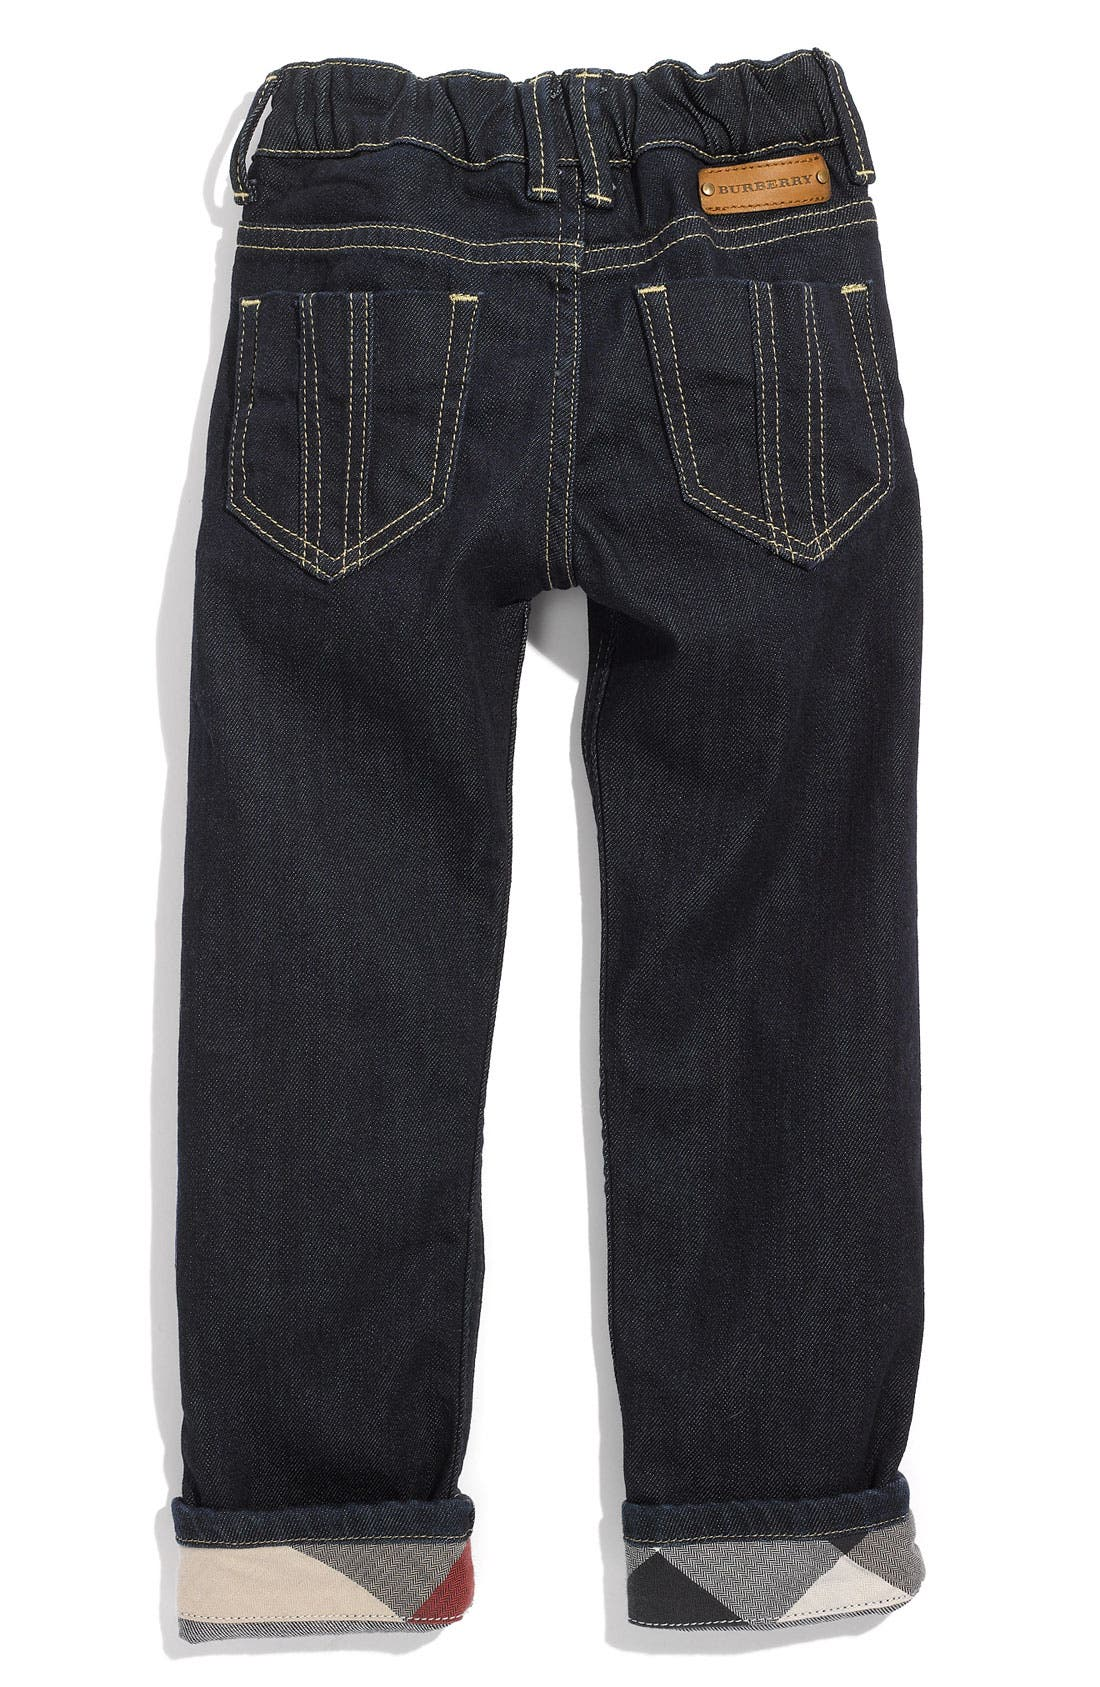 Main Image - Burberry Cuff Jeans (Toddler)